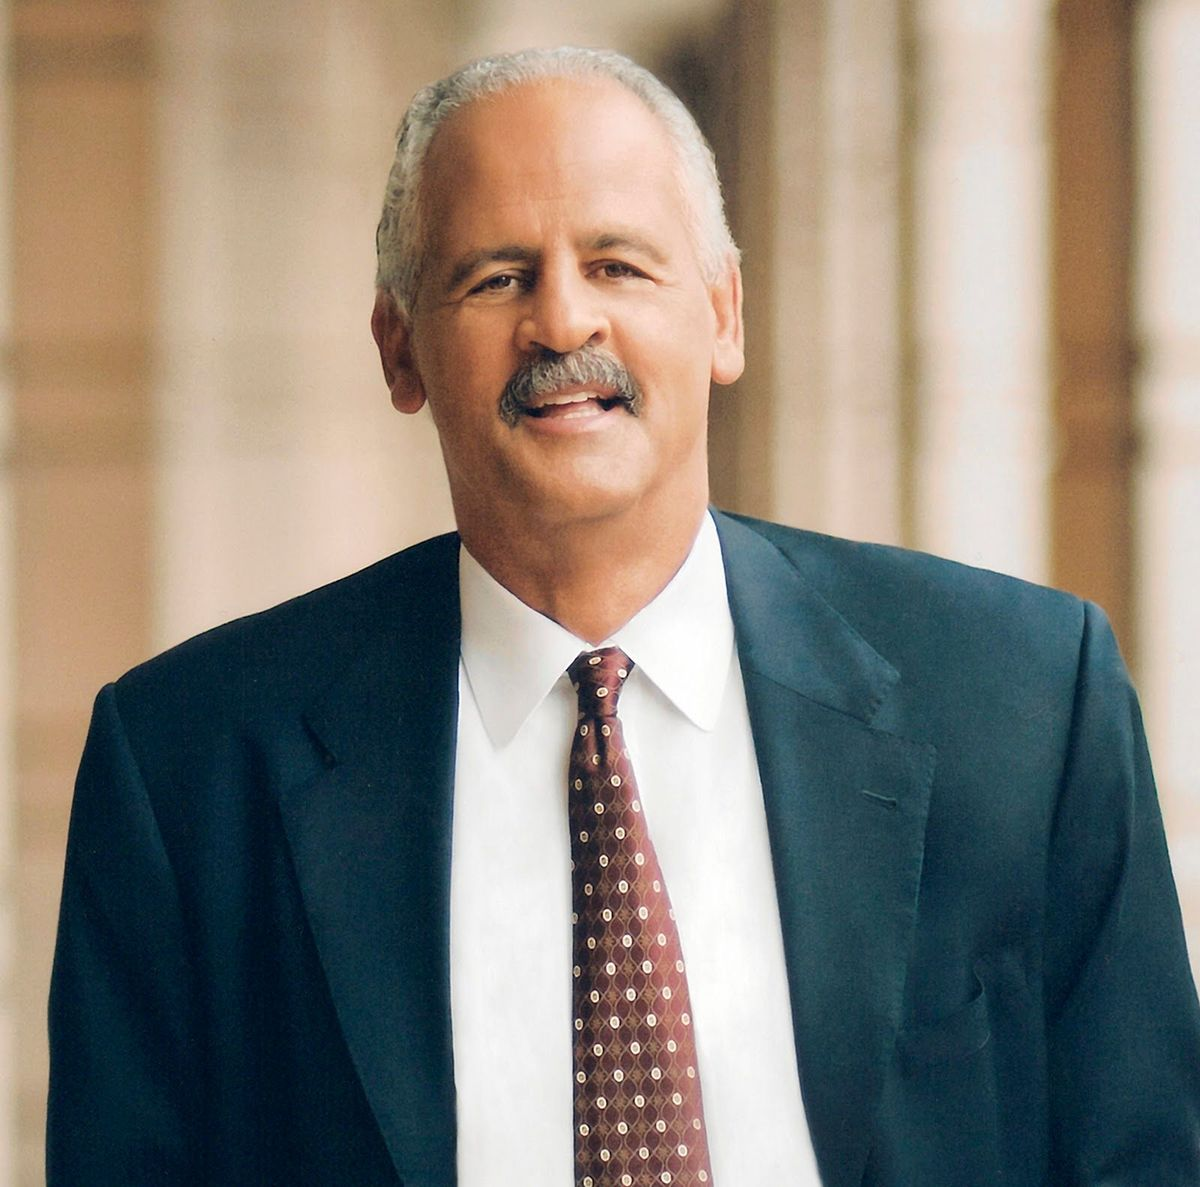 The 69-year old son of father (?) and mother(?) Stedman Graham in 2020 photo. Stedman Graham earned a  million dollar salary - leaving the net worth at  million in 2020